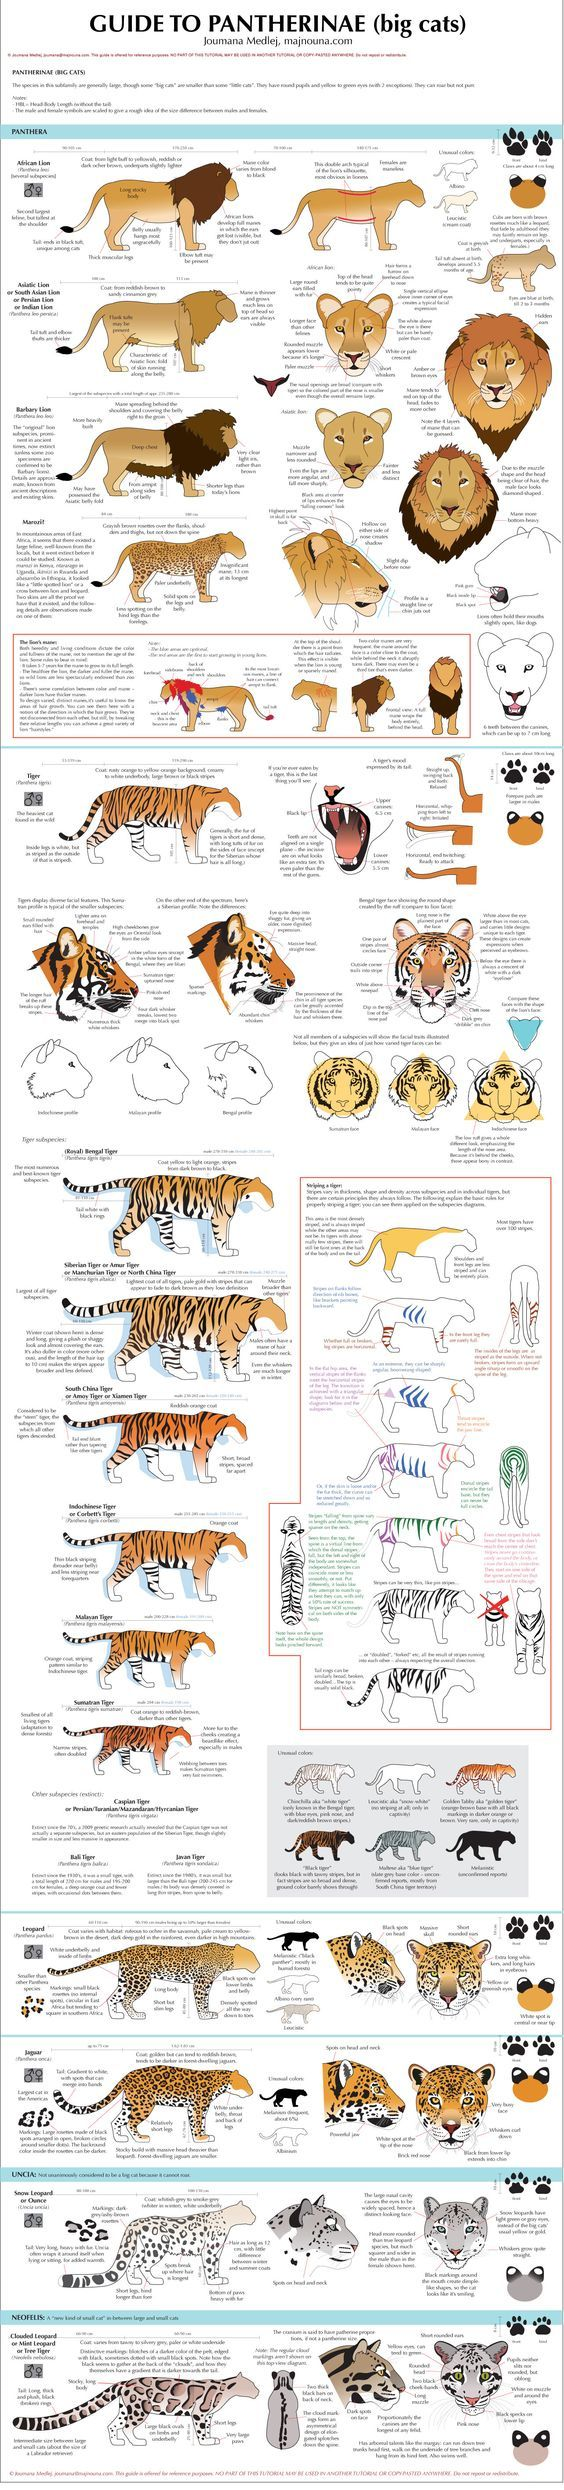 Guide to Big cats by `majnouna on deviantART ✤ || CHARACTER DESIGN REFERENCES | 解剖 • علم التشريح • анатомия • 解剖学 • anatómia • एनाटॉमी • ανατομία • 해부 • Find more at https://www.facebook.com/CharacterDesignReferences & http://www.pinterest.com/characterdesigh if you're looking for: #anatomy #anatomie #anatomia #anatomía #anatomya #anatomija #anatoomia #anatomi #anatomija #animal #creature || ✤: